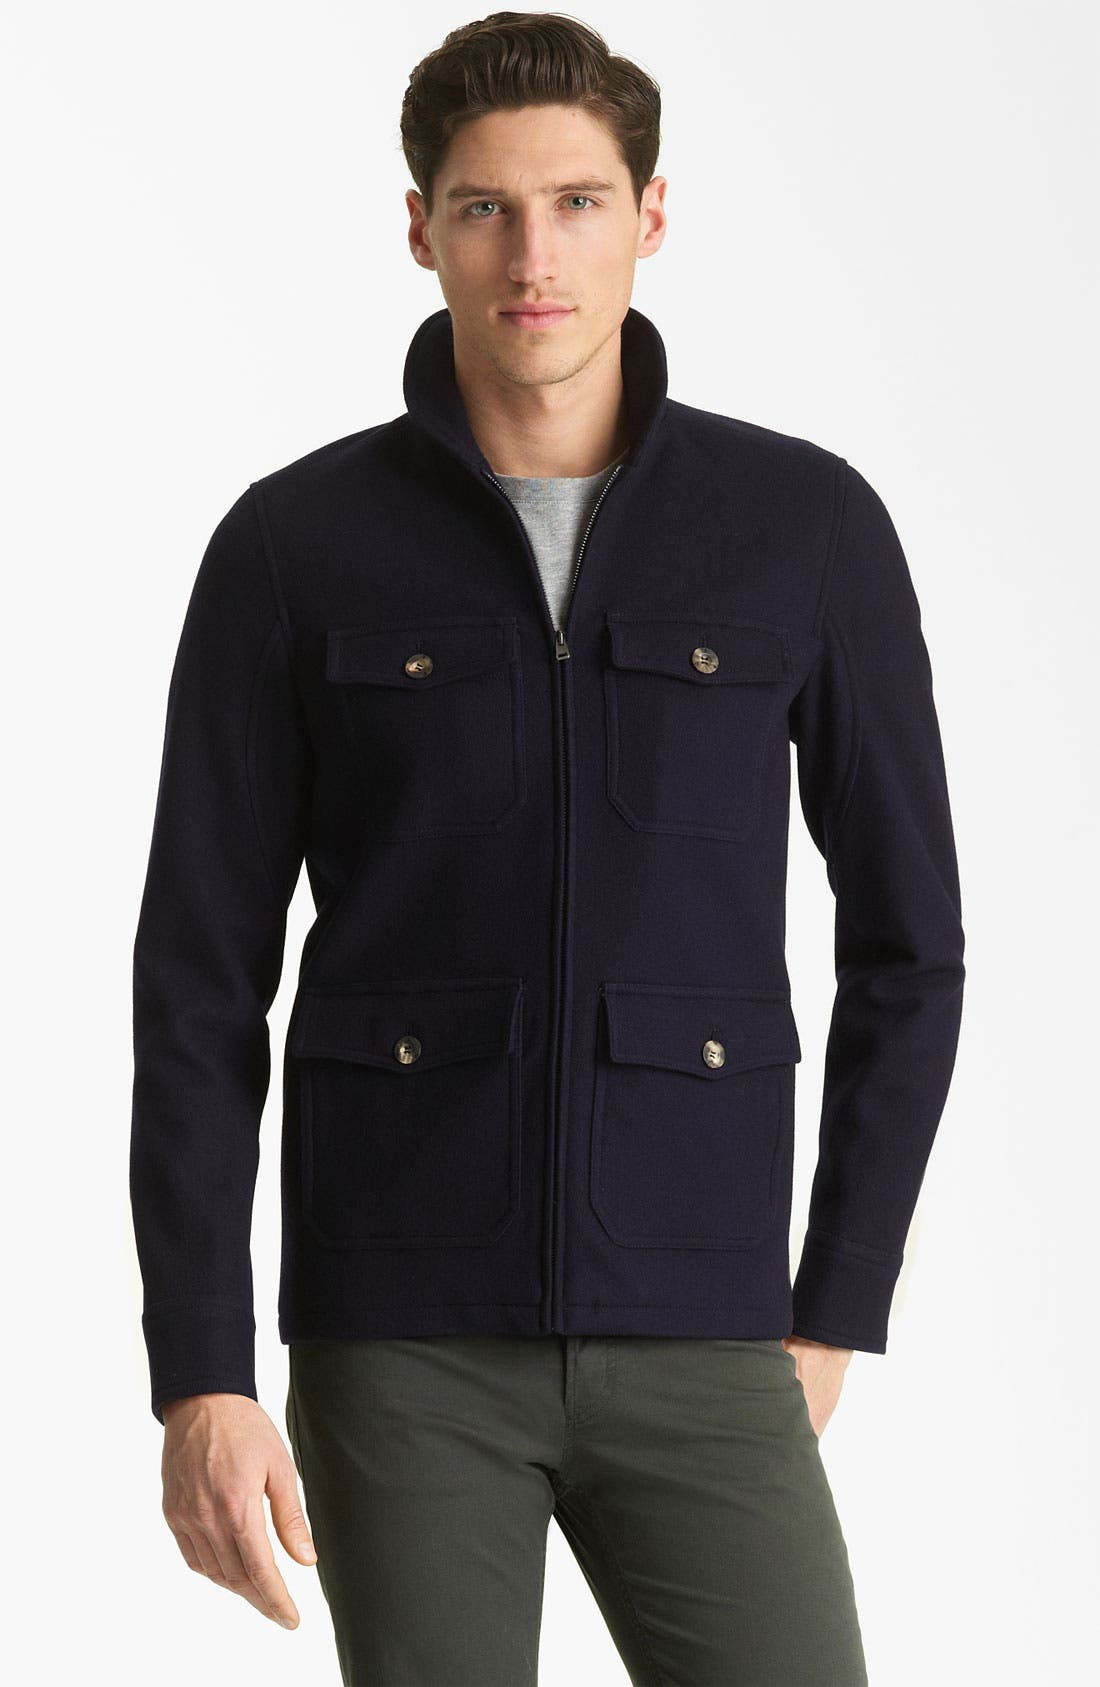 Alternate Image 1 Selected - A.P.C. Round Neck Jacket